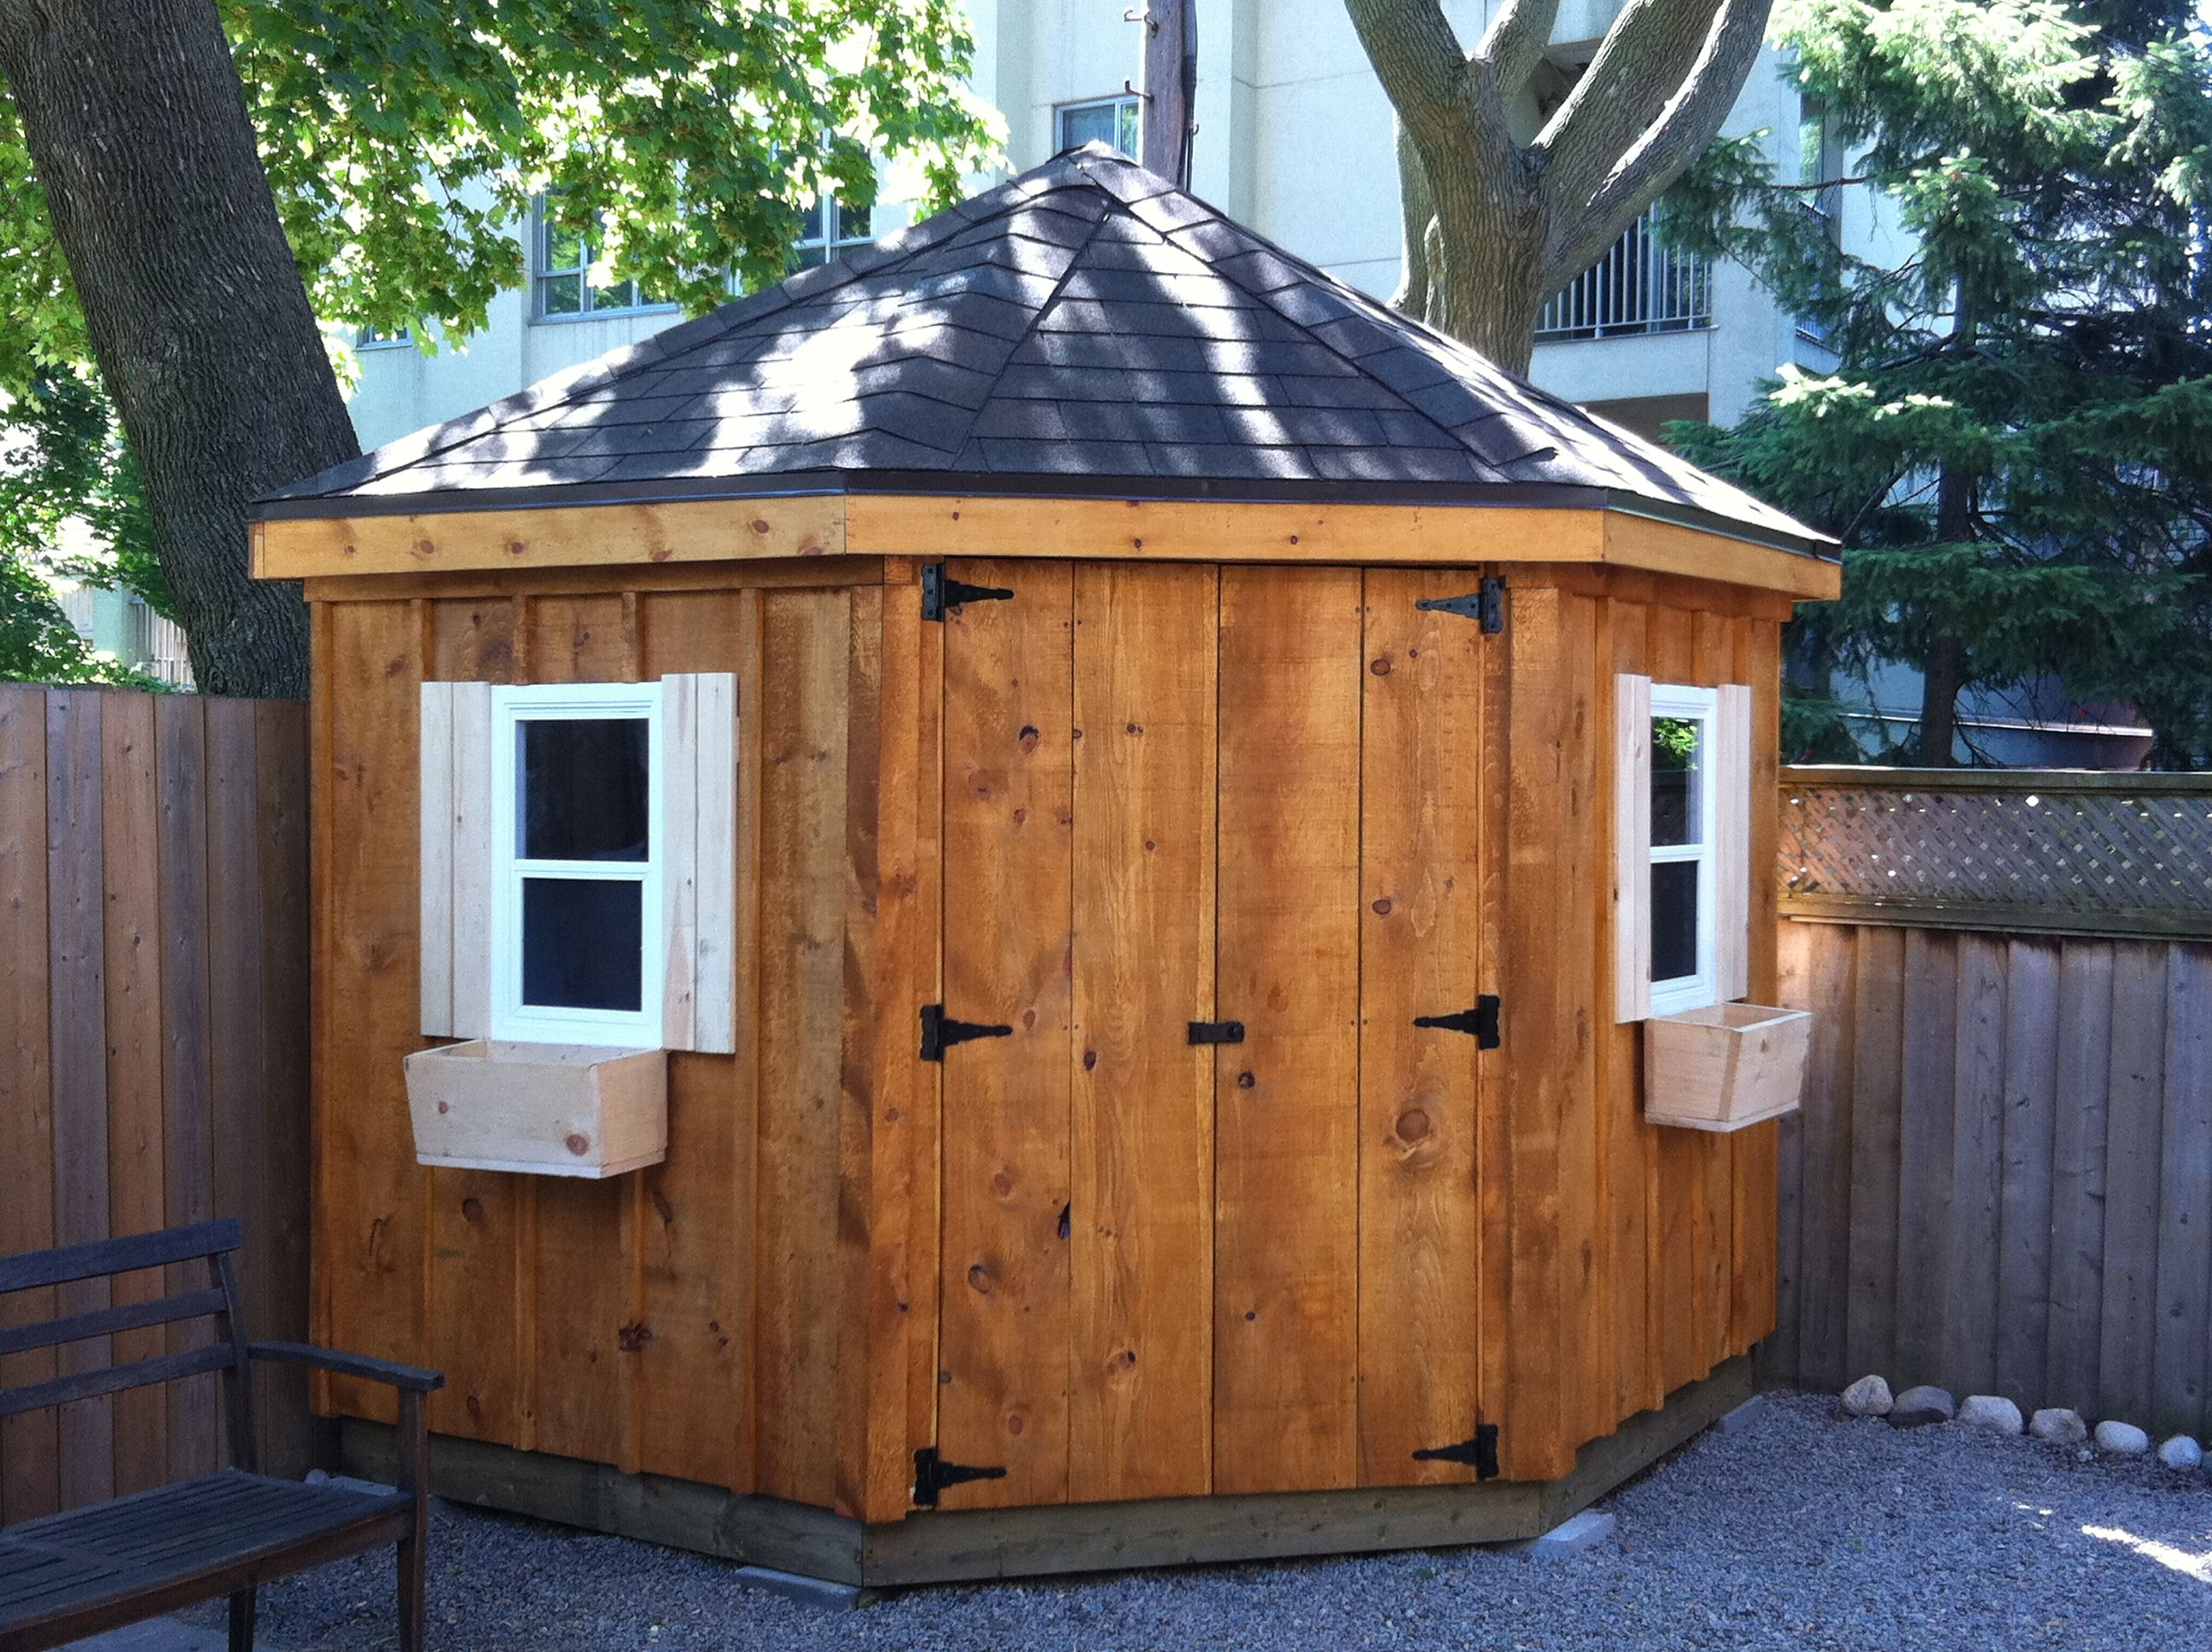 The Corner Shed Is A Common Shed That Fits Well Into Many Small Yards In The Gta Description From Torontogardenshe Corner Sheds Diy Shed Plans Building A Shed